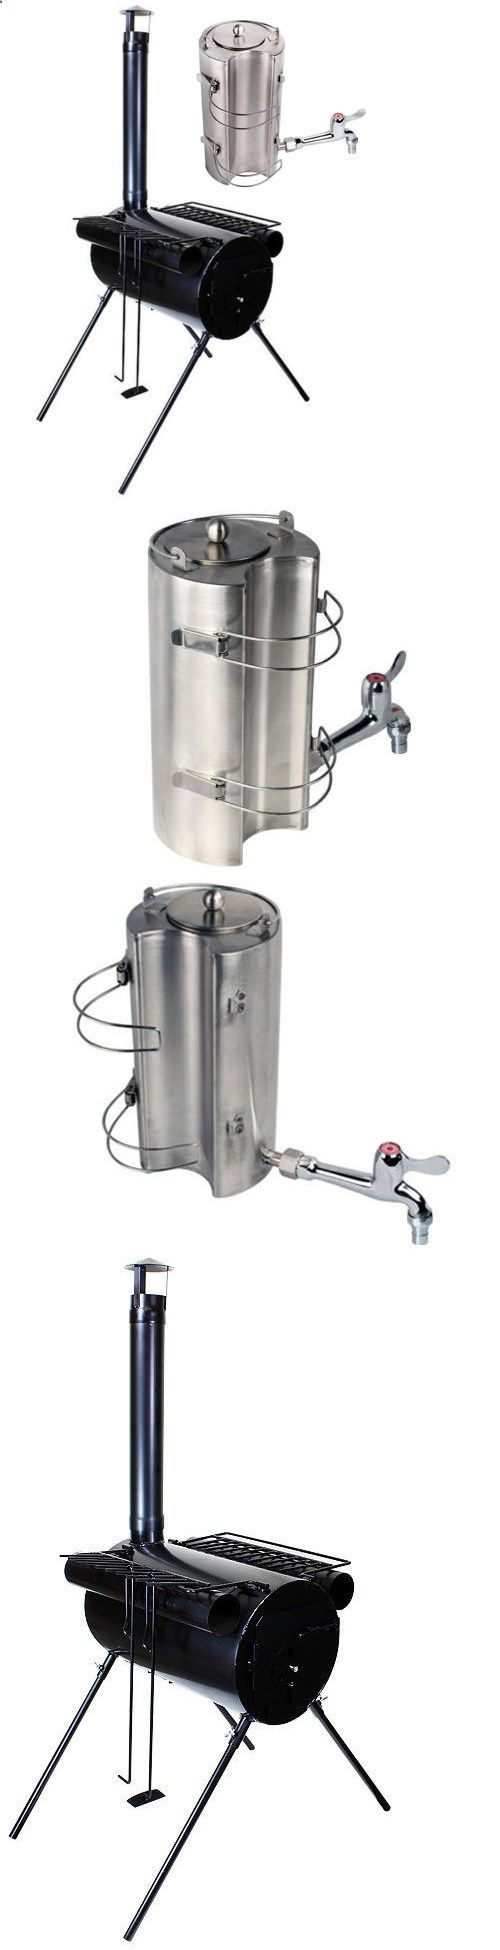 Camping Stoves 181386: Portable Military Camping Ice Fishing Cook Wood Stove Tent Heater   Water Kettle -> BUY IT NOW ONLY: $57.95 on eBay!